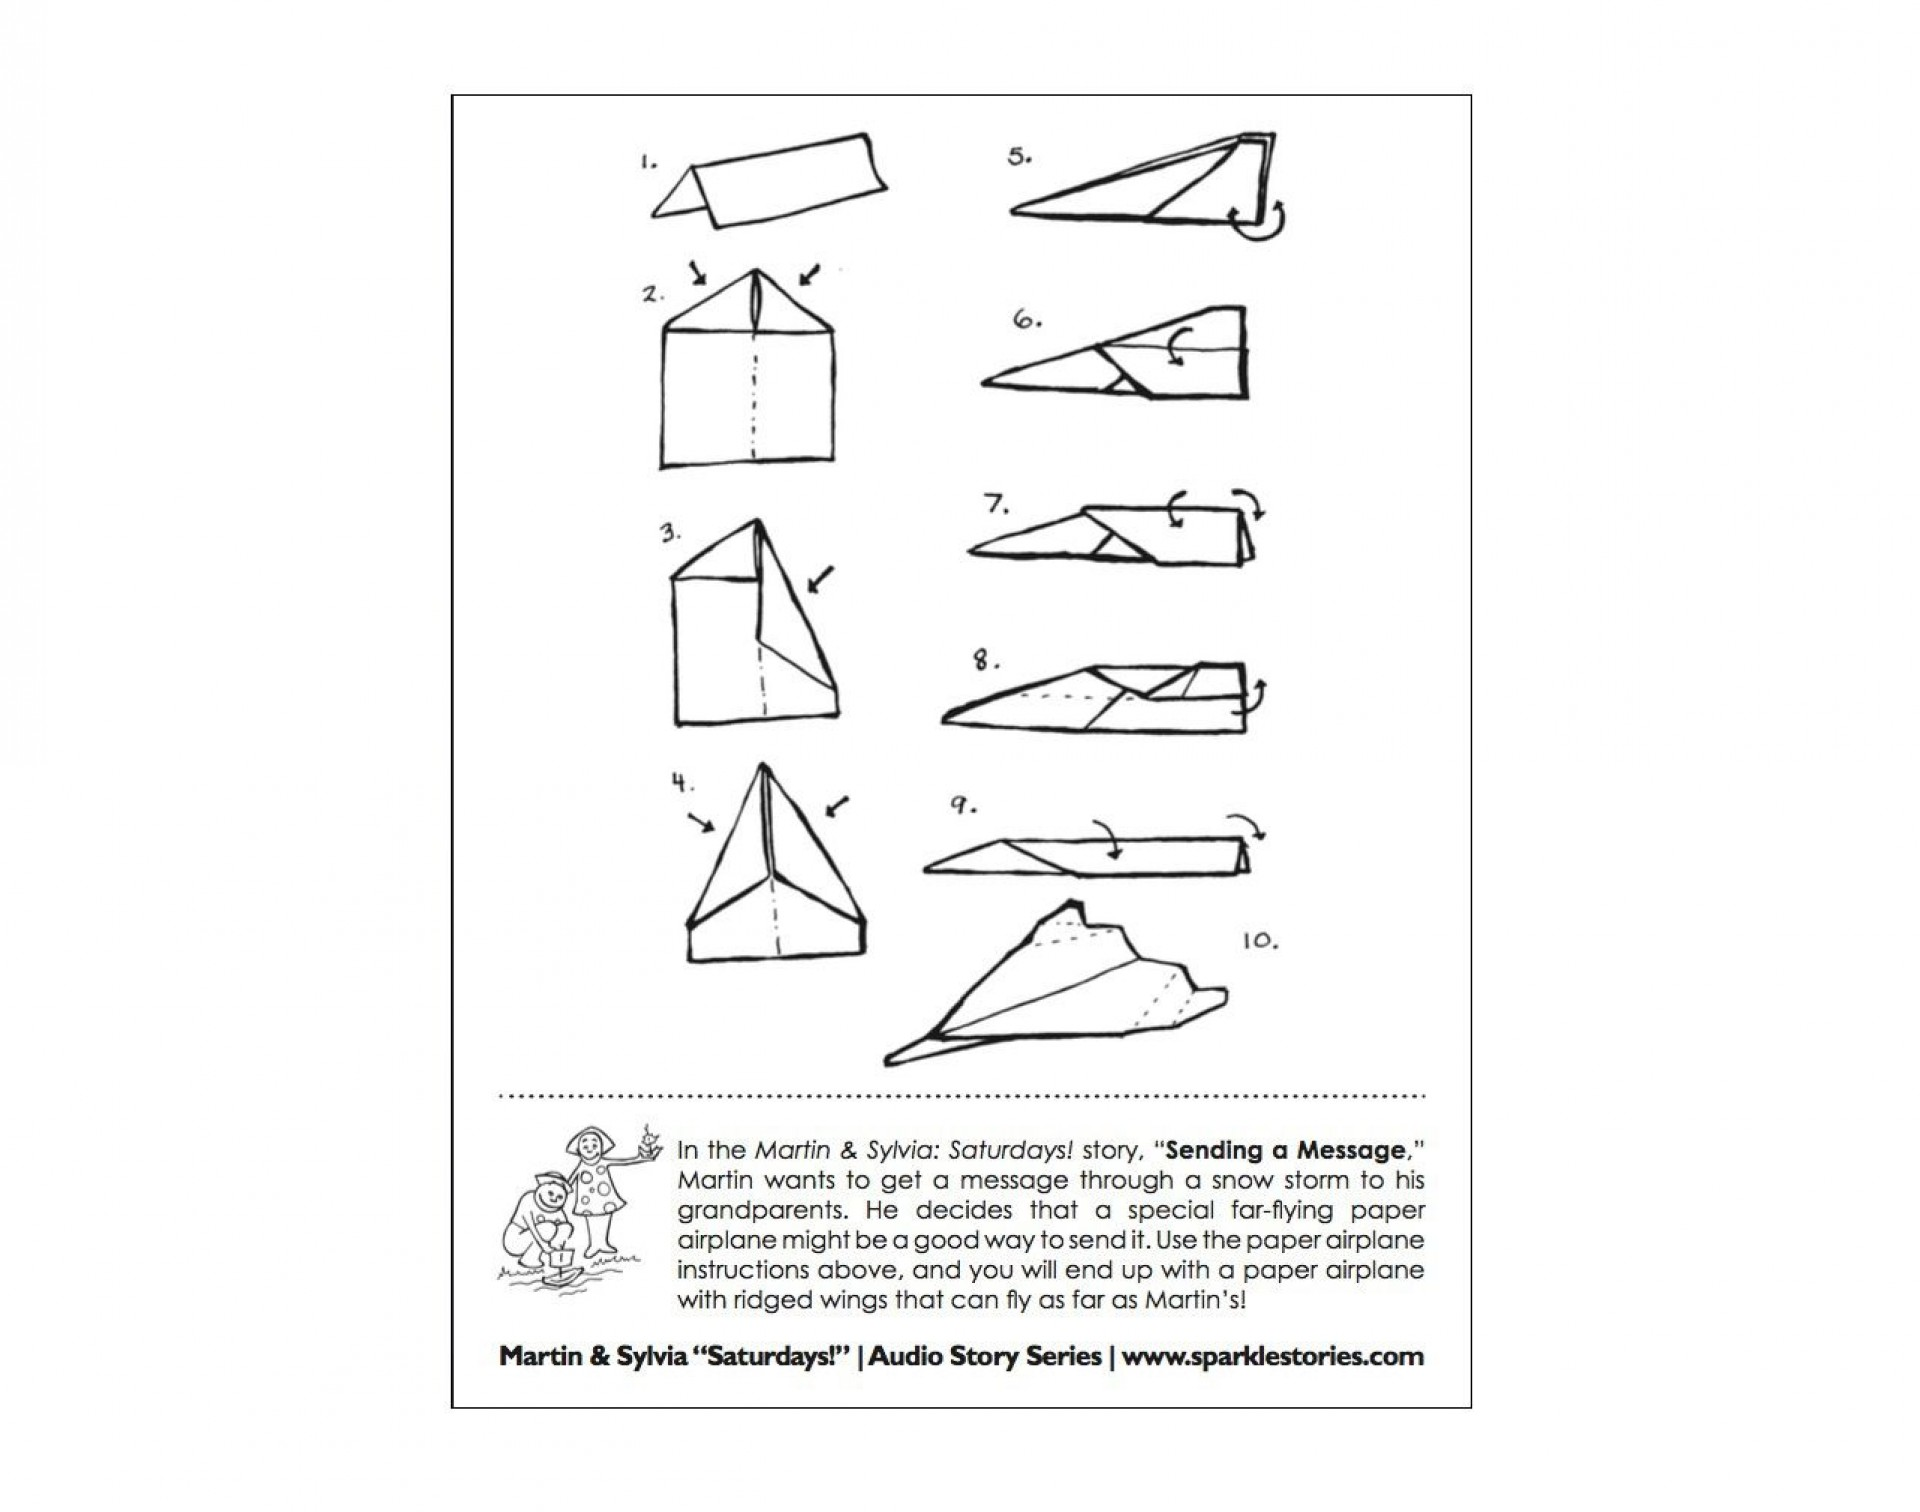 009 Magnificent Printable Paper Airplane Instruction Photo  Instructions Free Pdf Folding1920